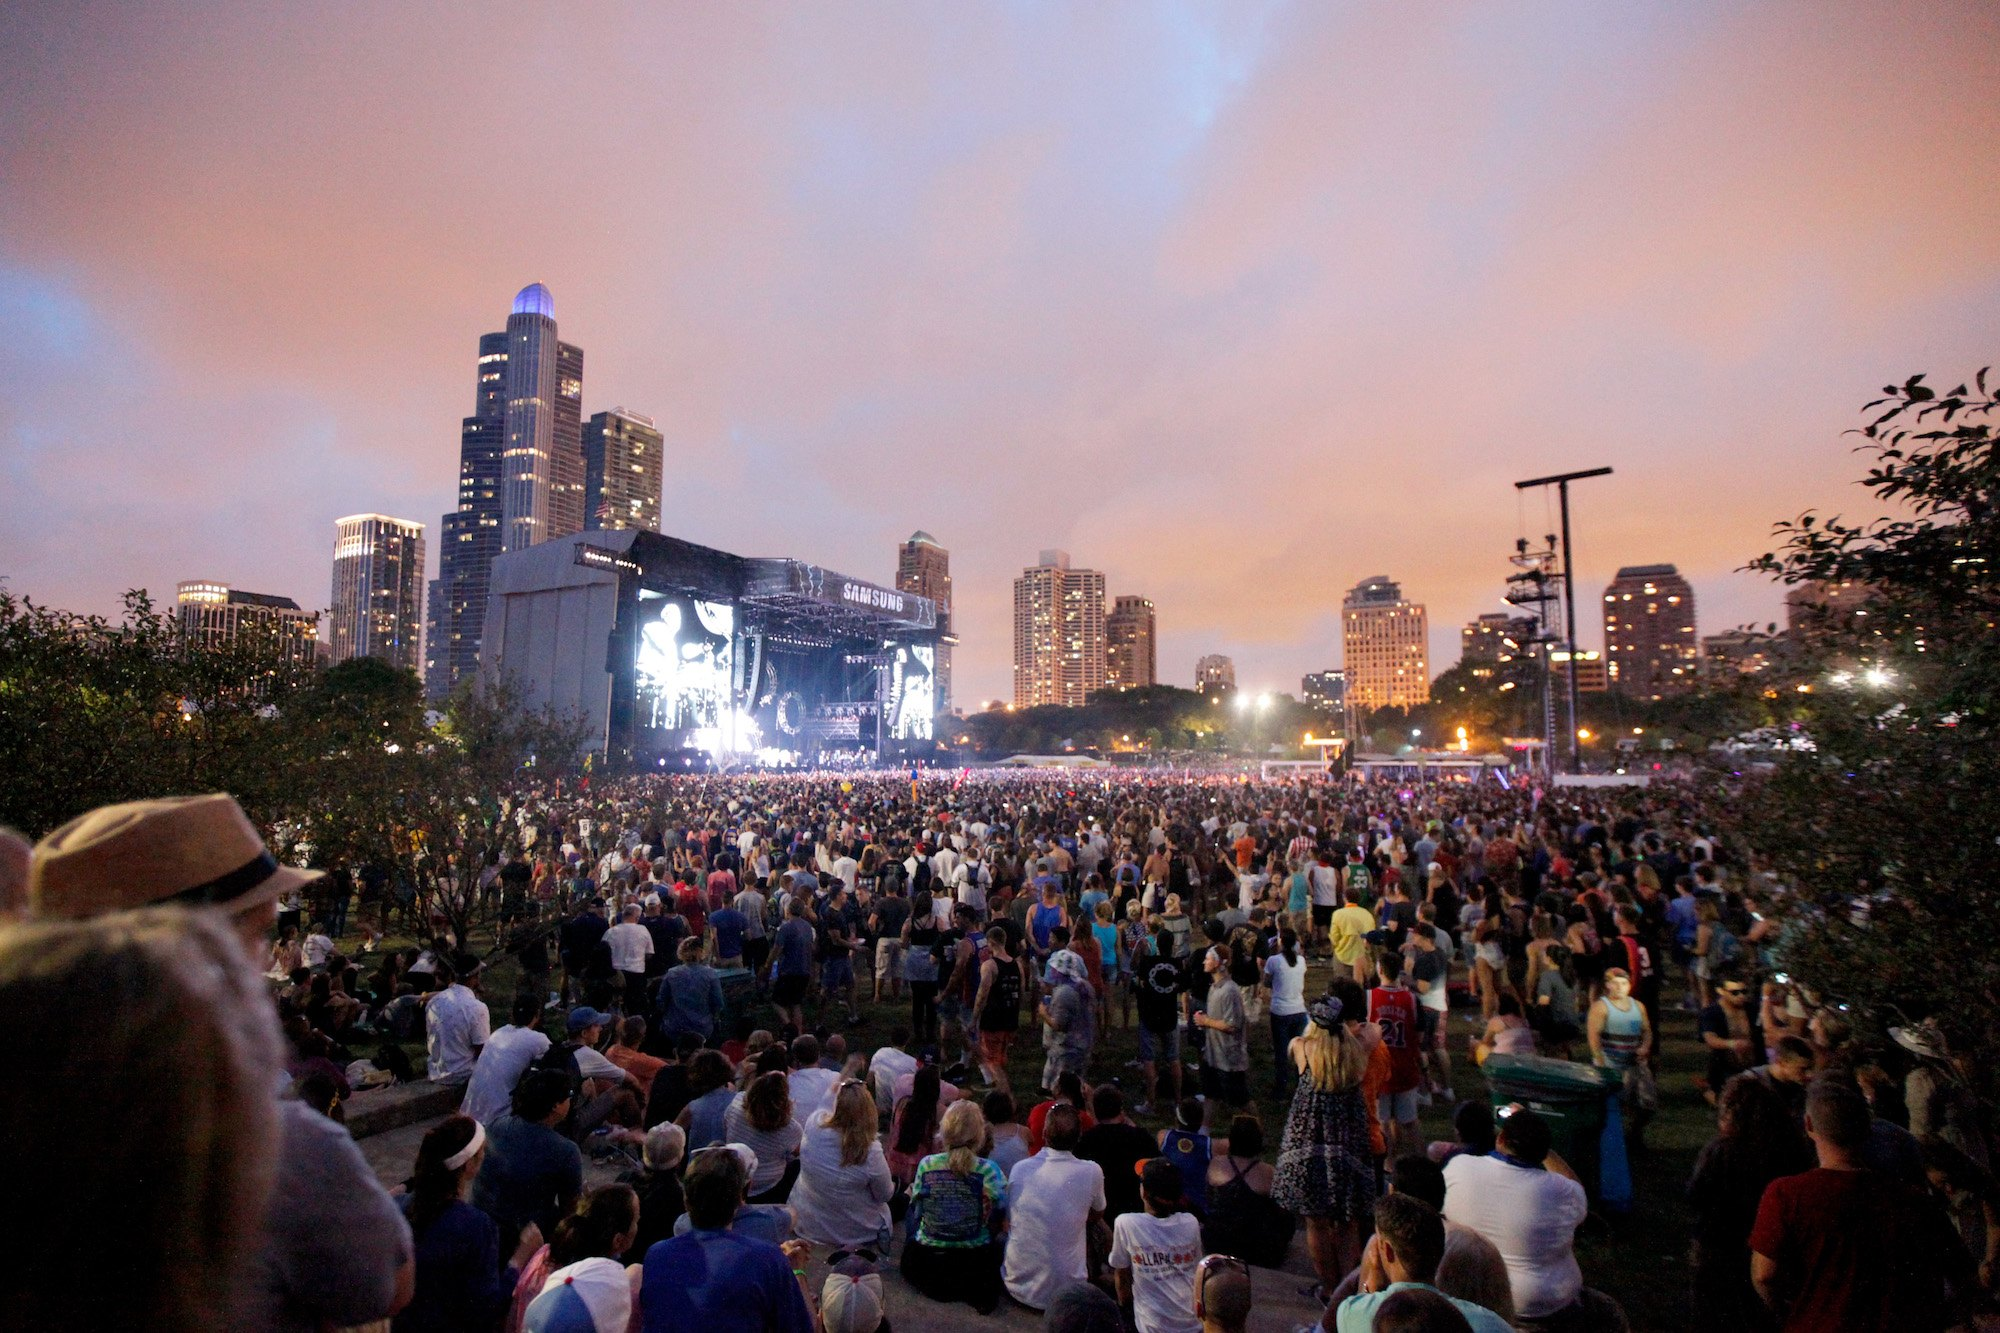 What to expect at Lollapalooza